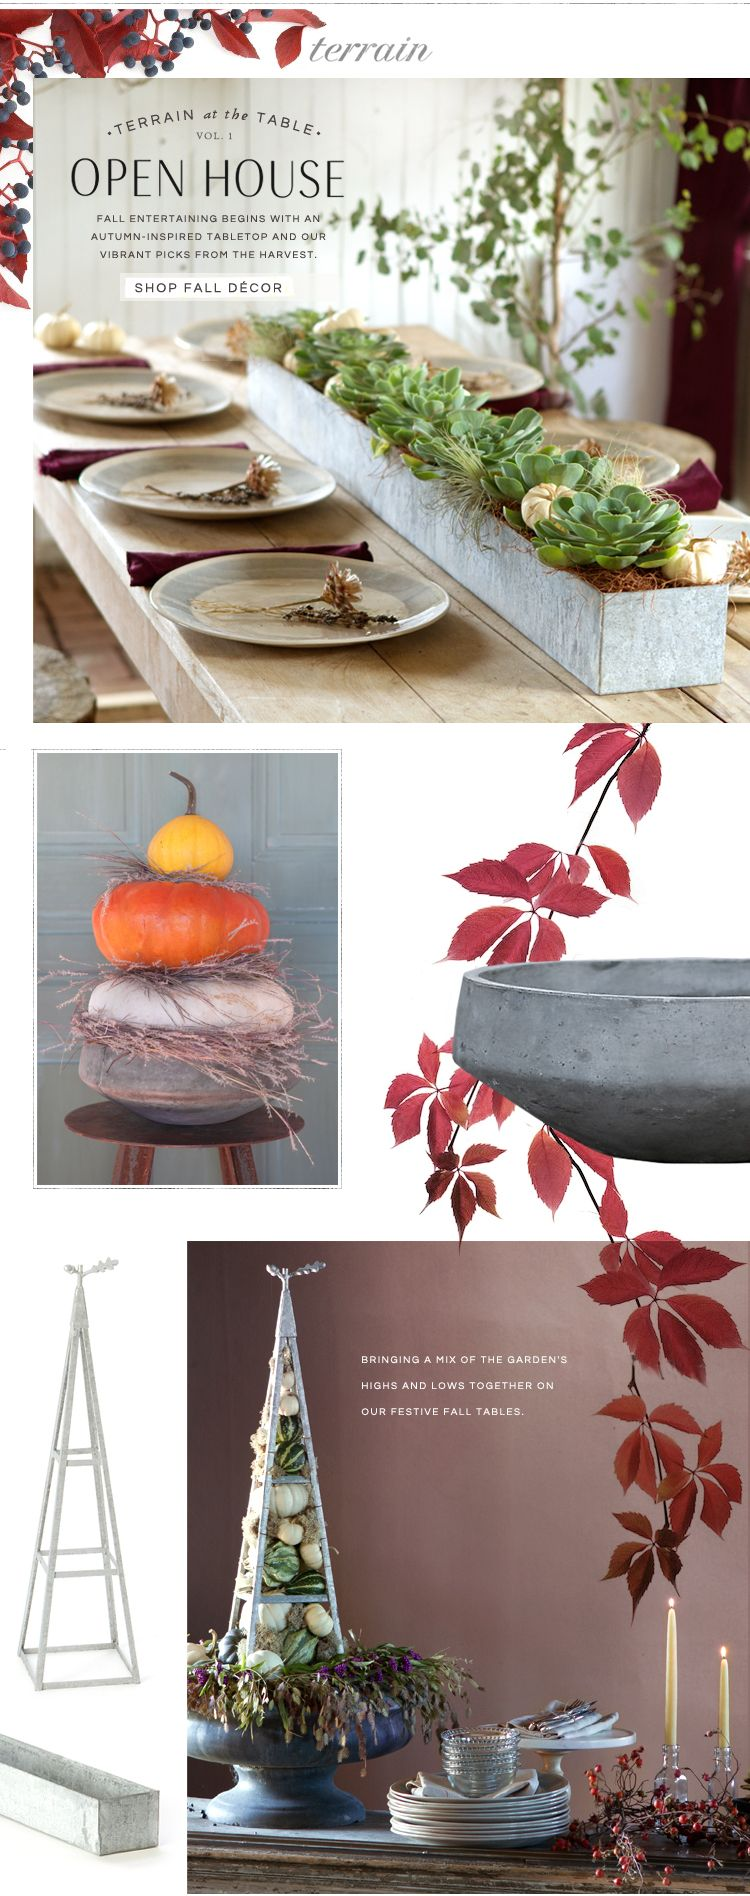 Terrain at the Table, Open House: Fall entertaining begins with an autumn-inspired tabletop and our vibrant picks from the harvest.